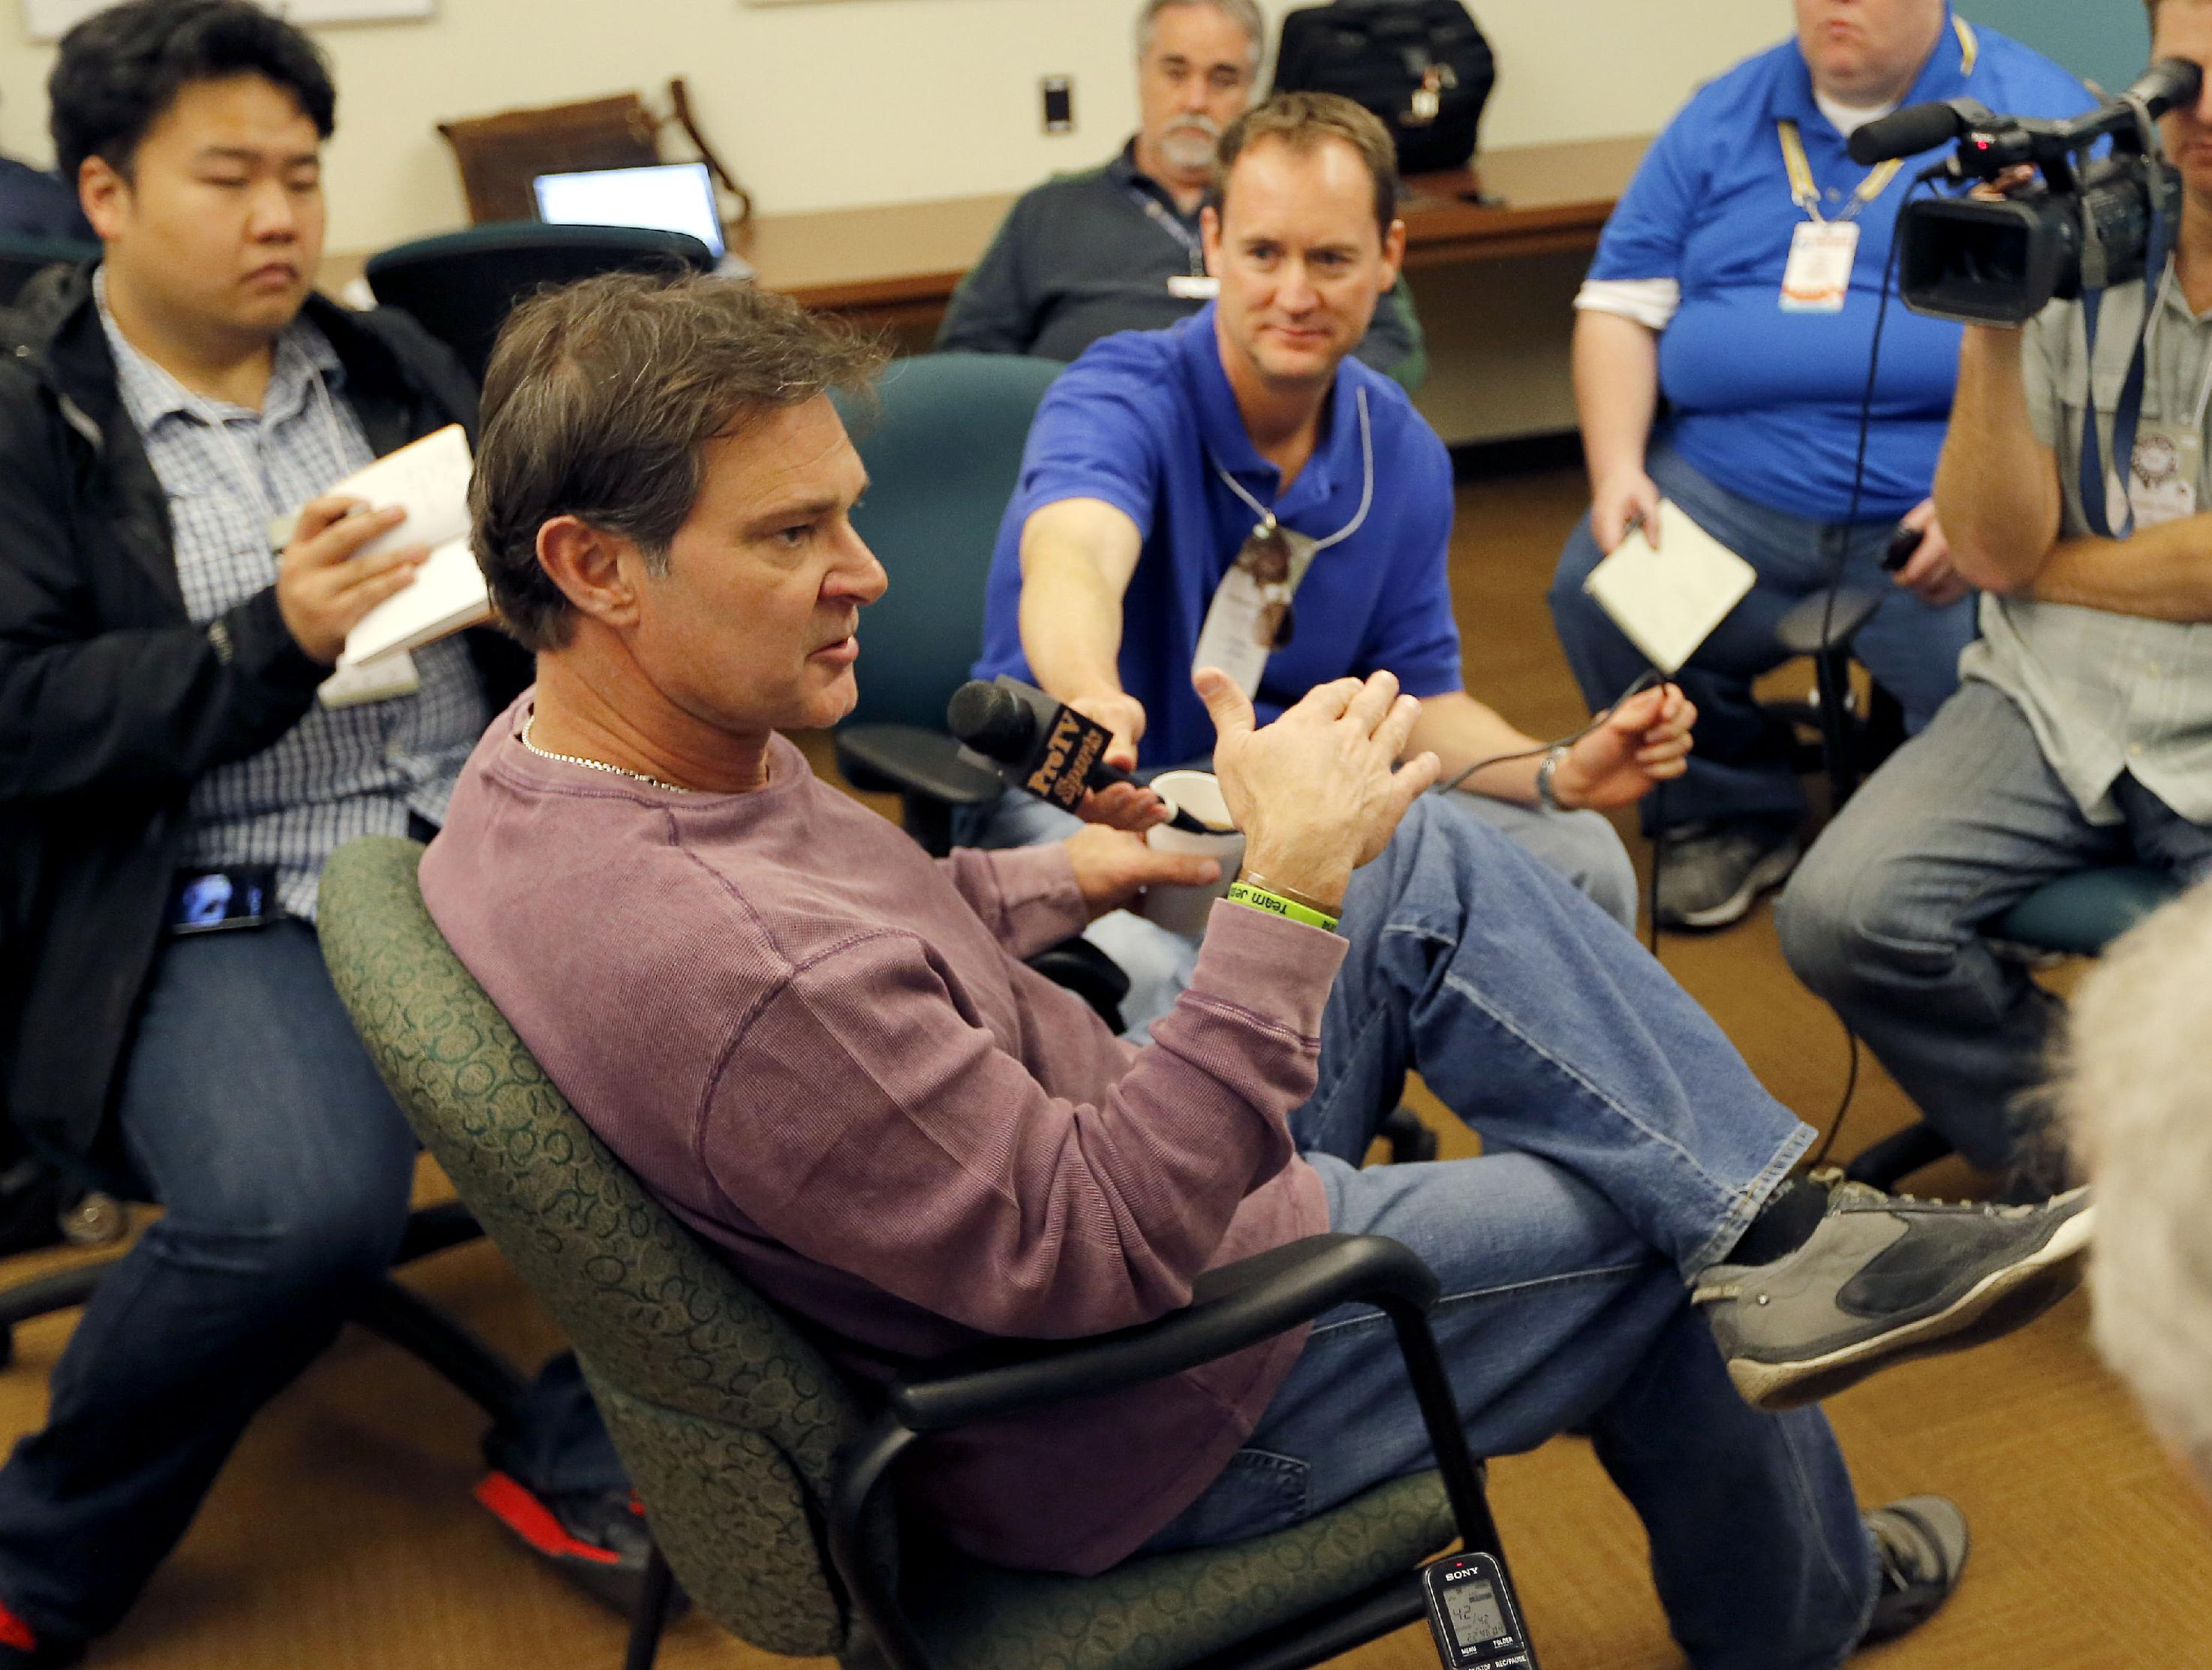 Los Angeles Dodgers manager Don Mattingly speaks to reporters, Saturday, Feb. 8, 2014, in Glendale, Ariz. The Dodgers first spring training baseball practice begins Sunday